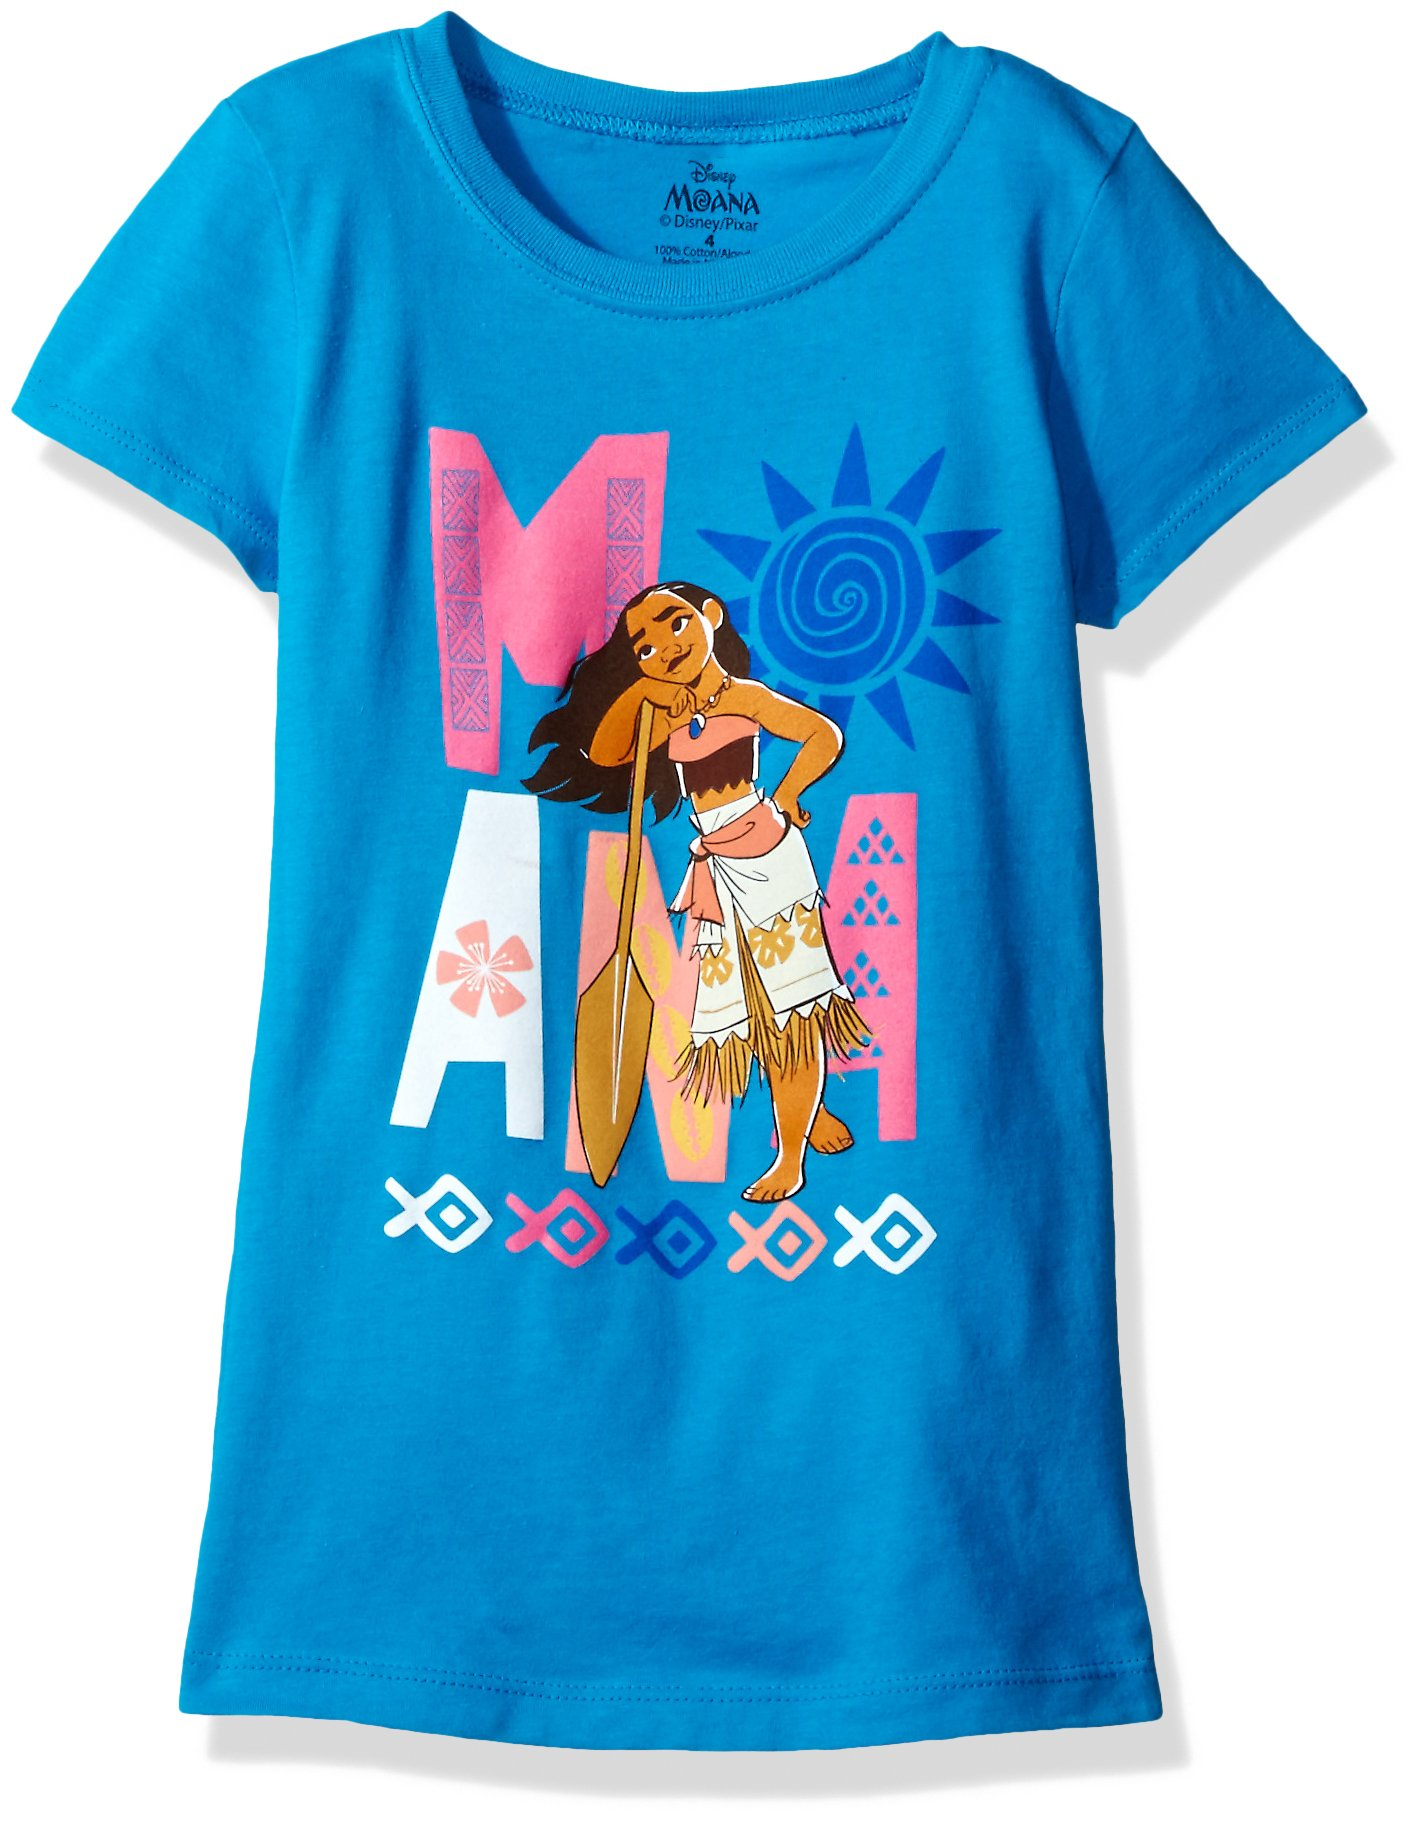 KUFV Girls Moana Girls Short Sleeve T-Shirt